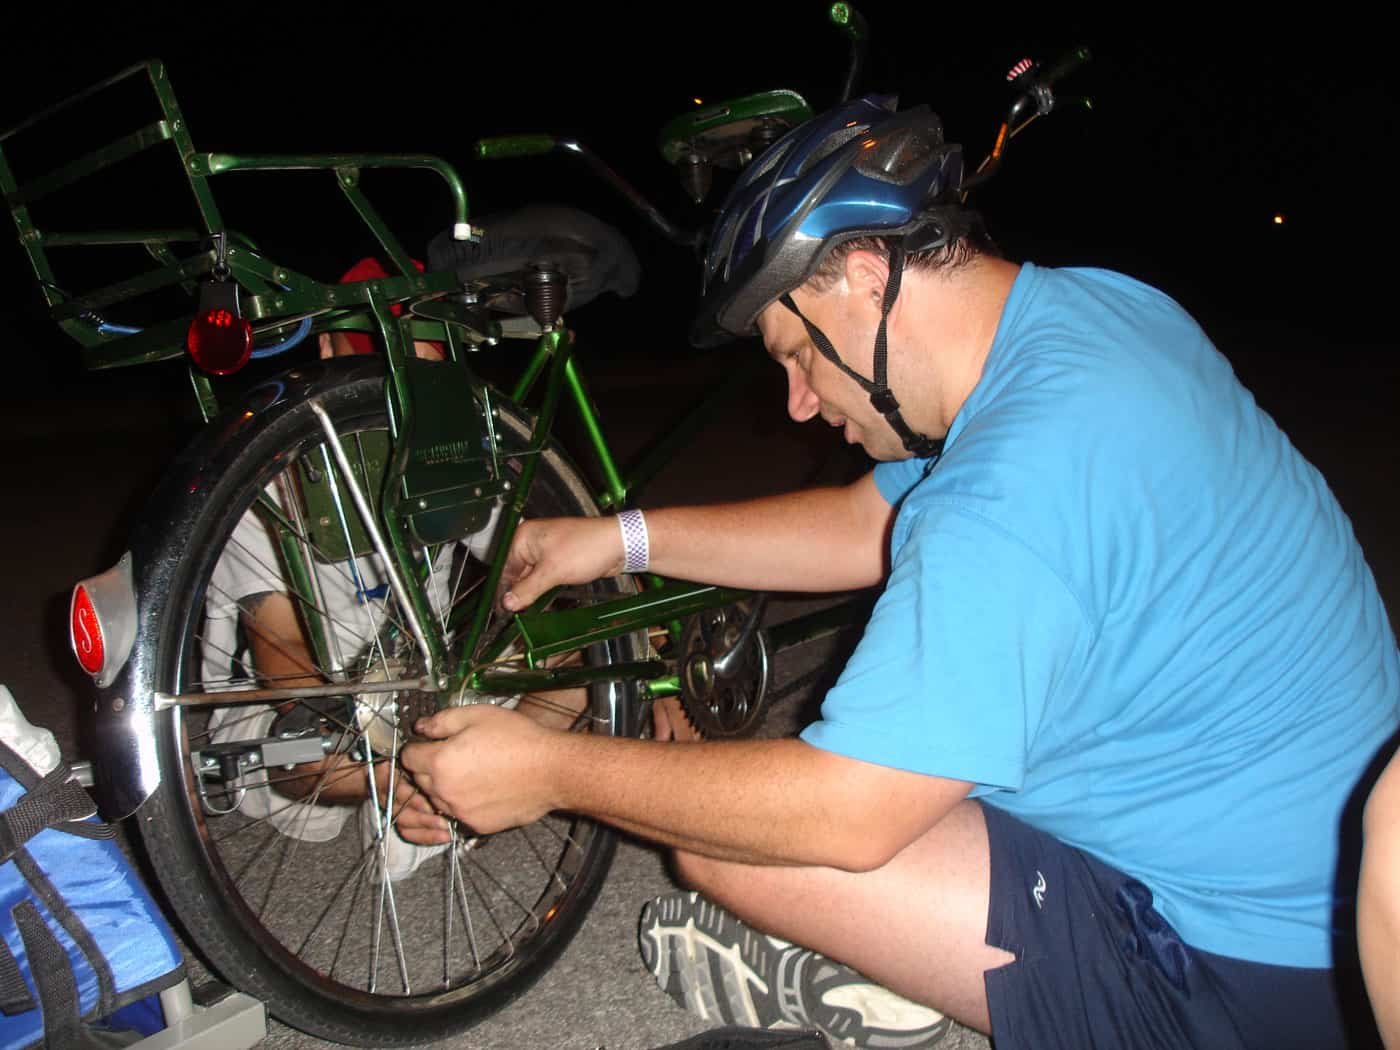 Man fixing tandem bike